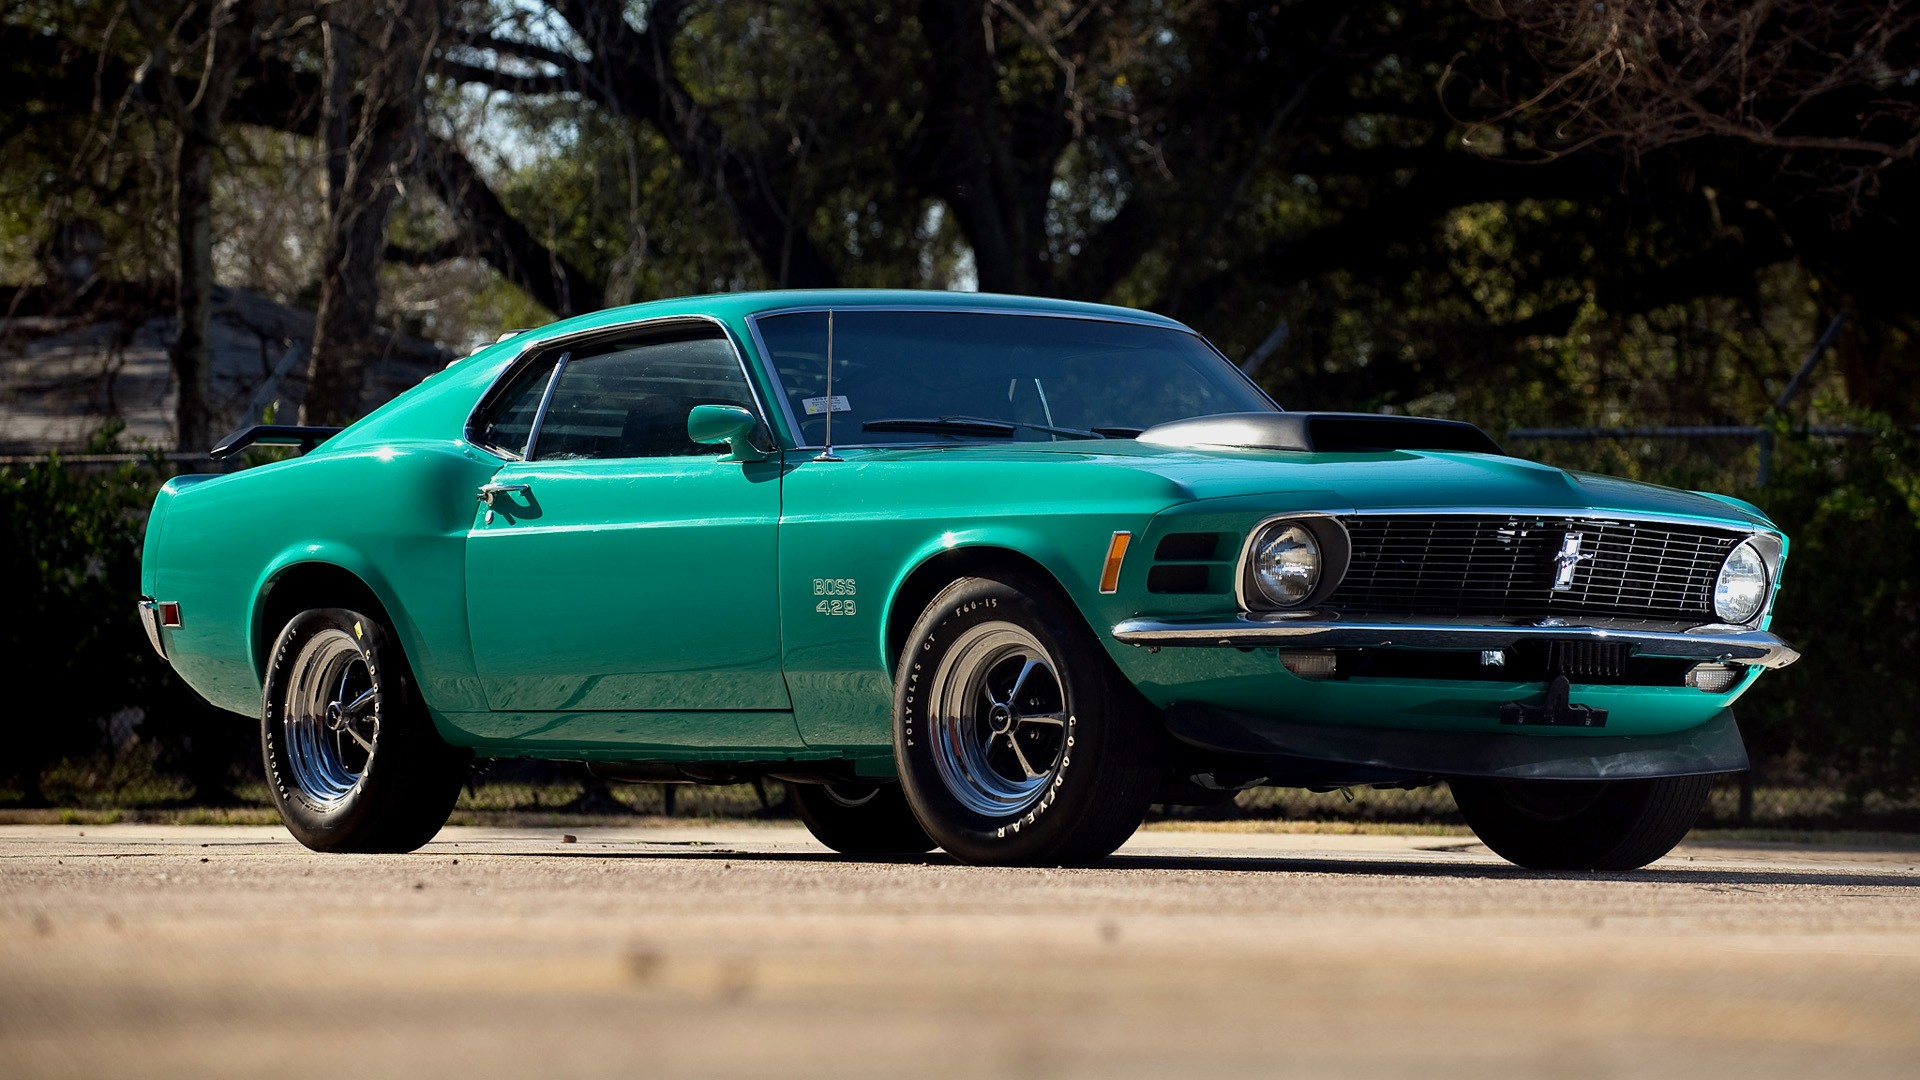 Cars Muscle Wallpaper 1920x1080 Cars, Muscle, Cars, Boss, Vehicles ...